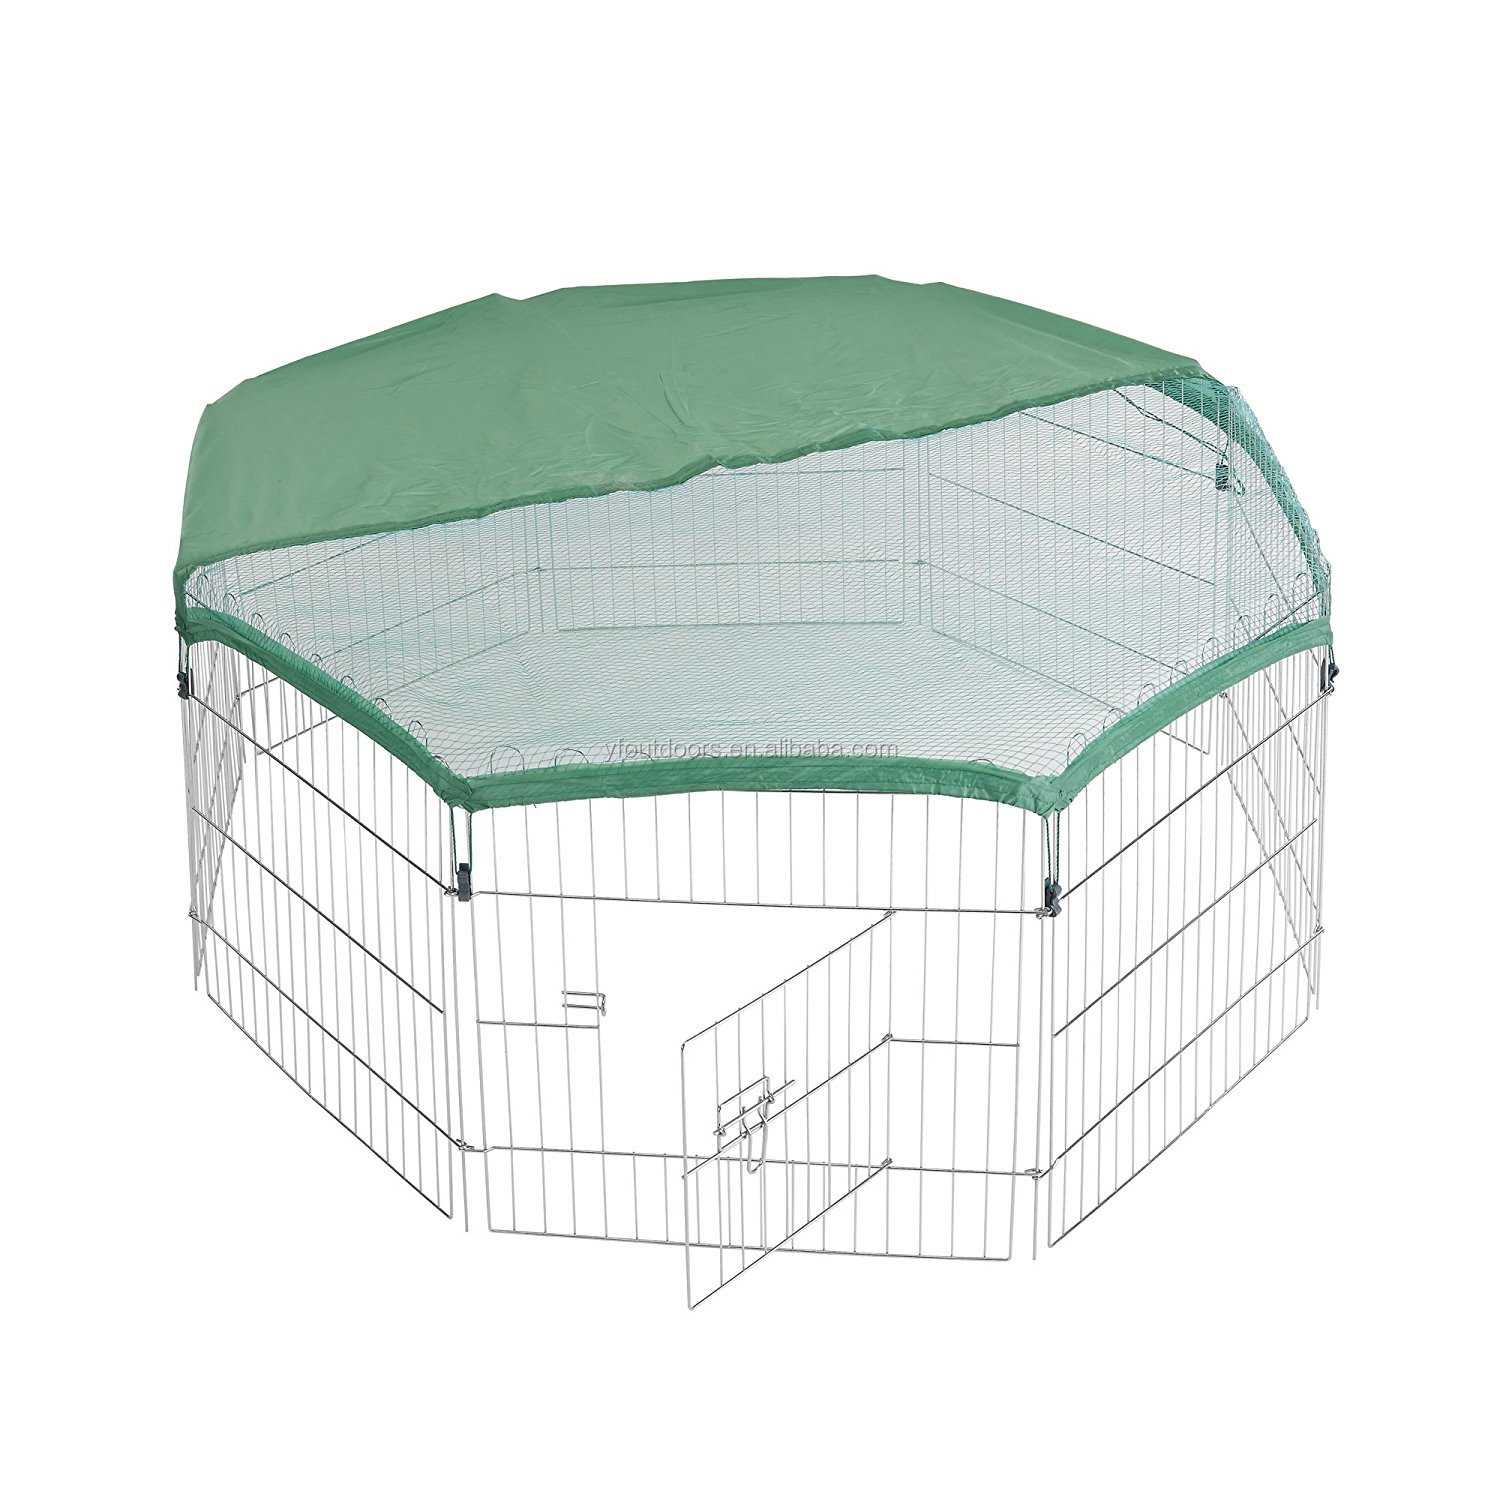 2018 Large steel fence dog kennel outdoor, galvanized silver